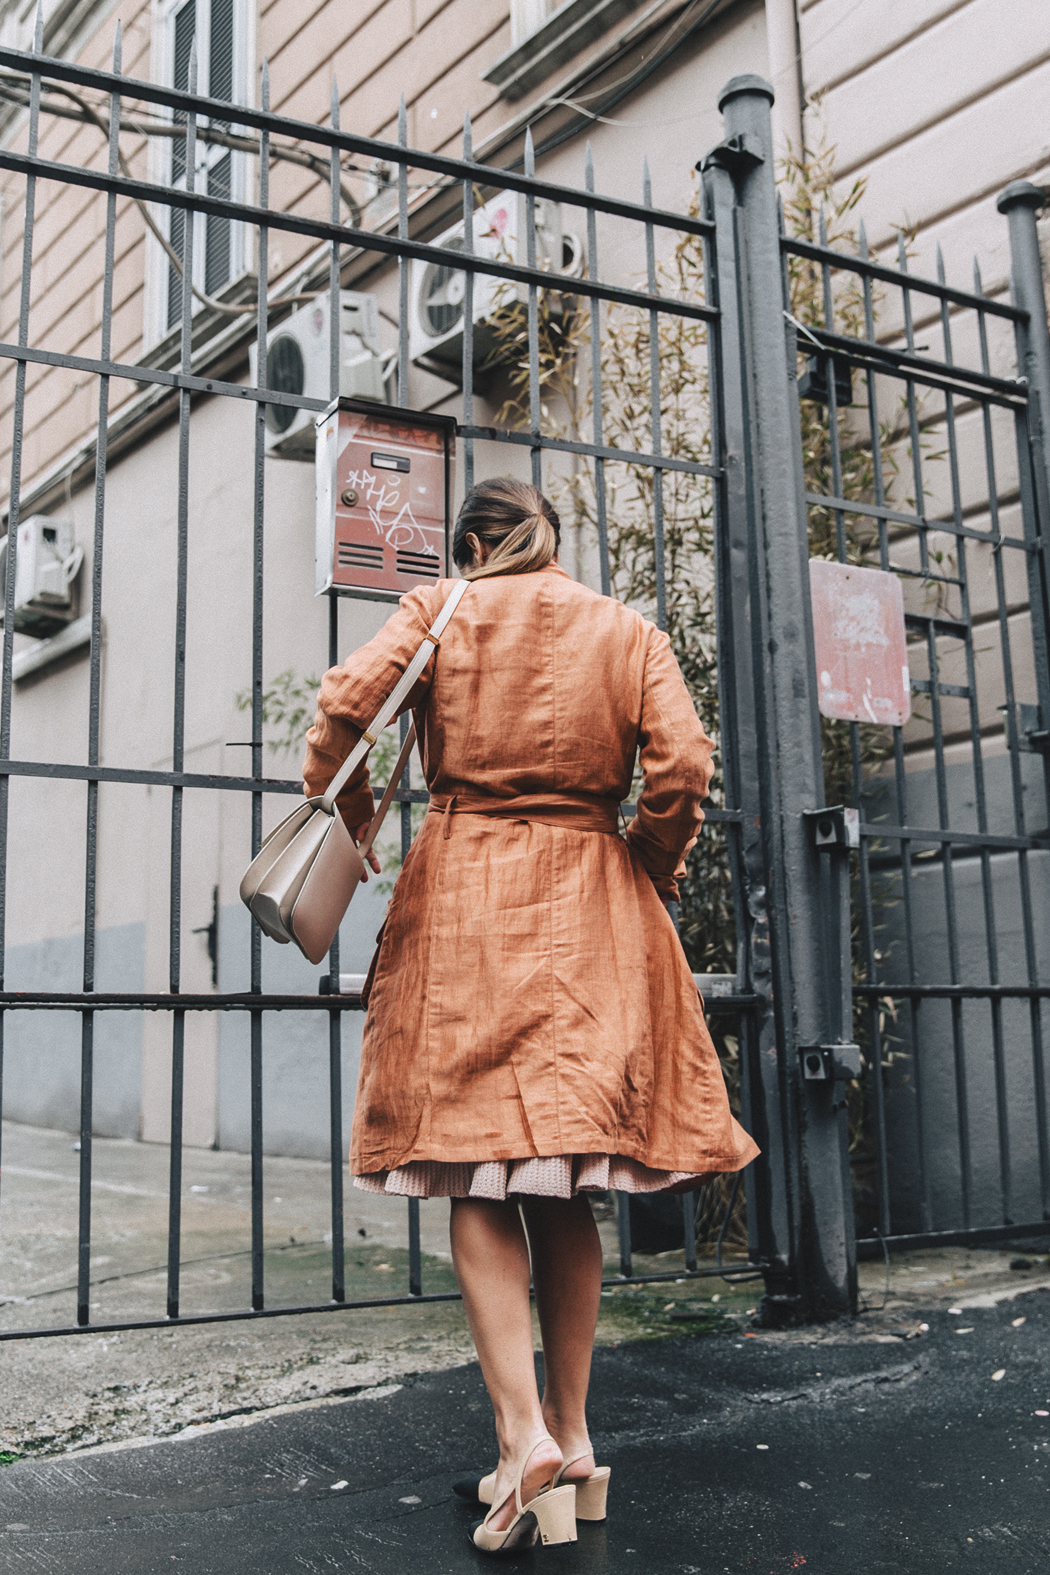 Armani-Trench_Coat-Pink_Dress-Chanel_Slingbacks-Celine_Box_Bag-Outfit-Milan_Fashion_Week-Street_Style-18